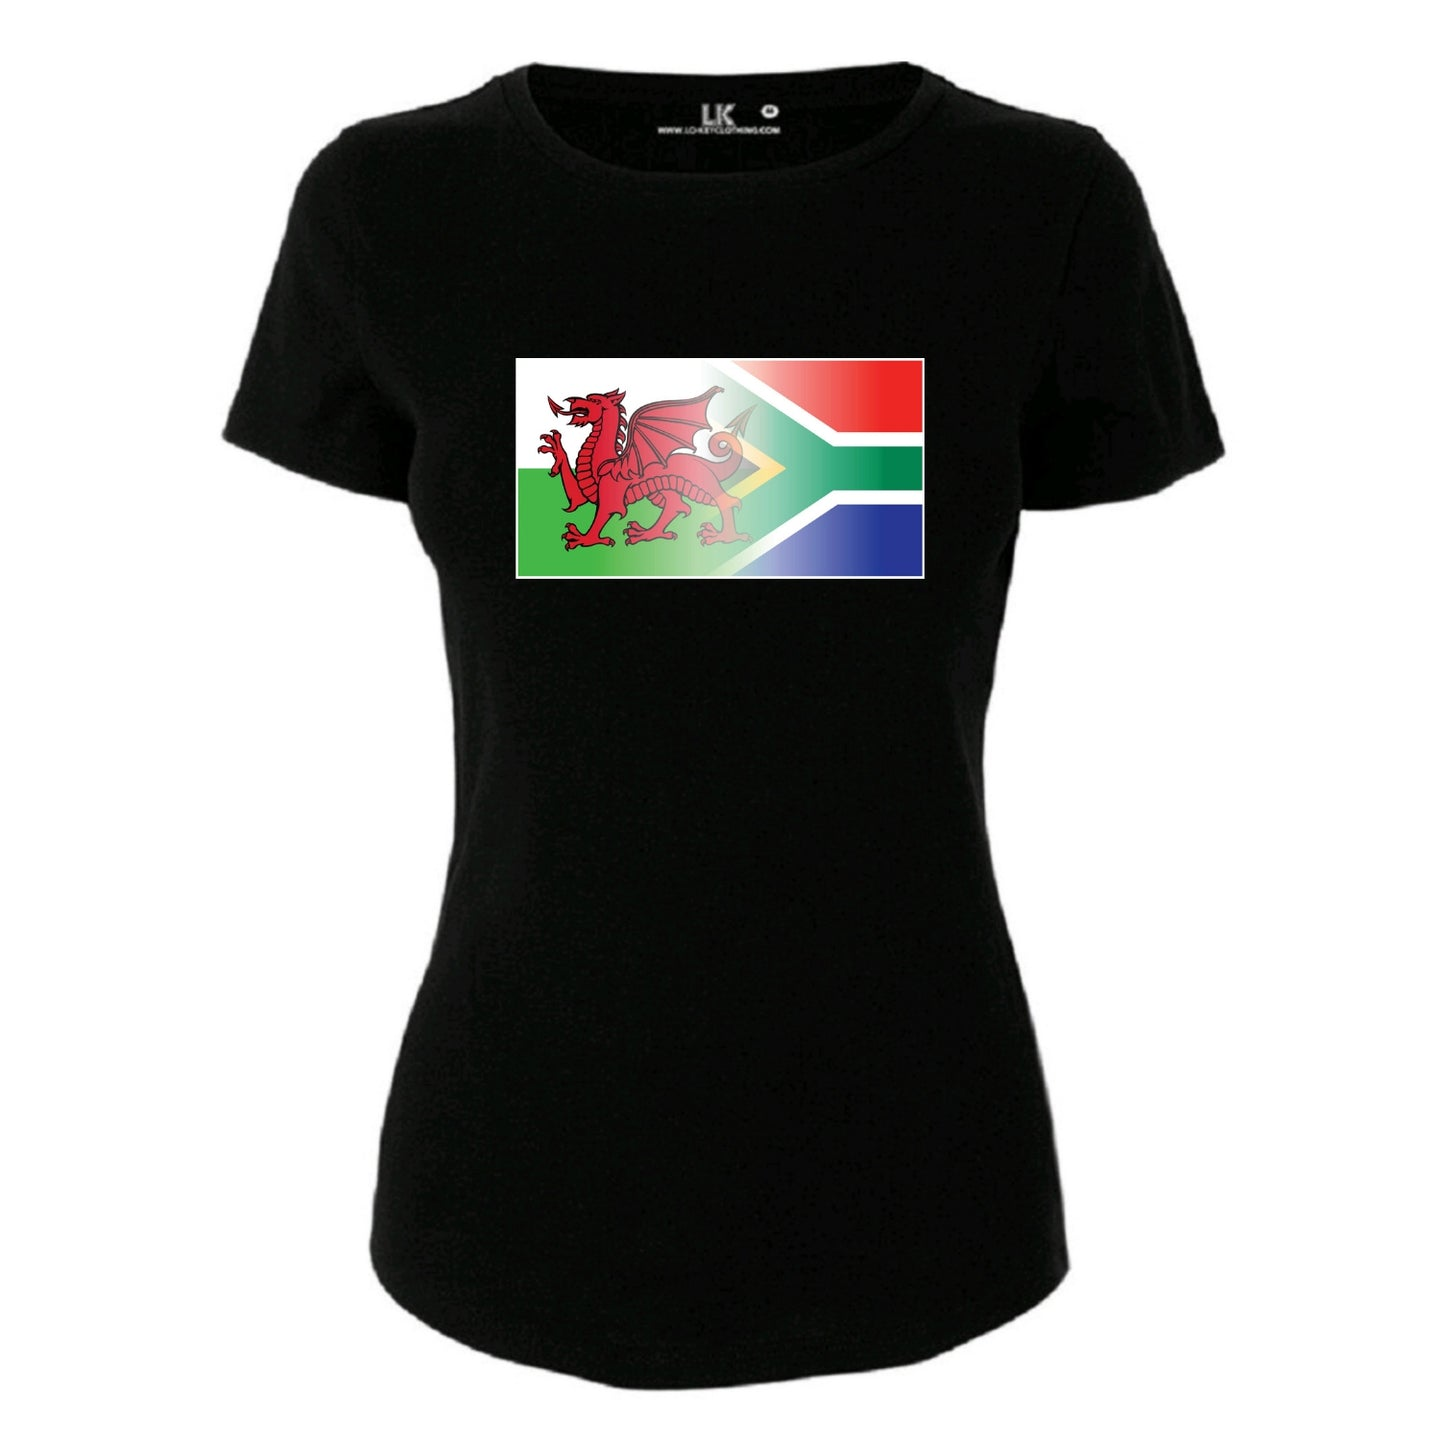 Welsh & South Africa Flag Blend TShirt